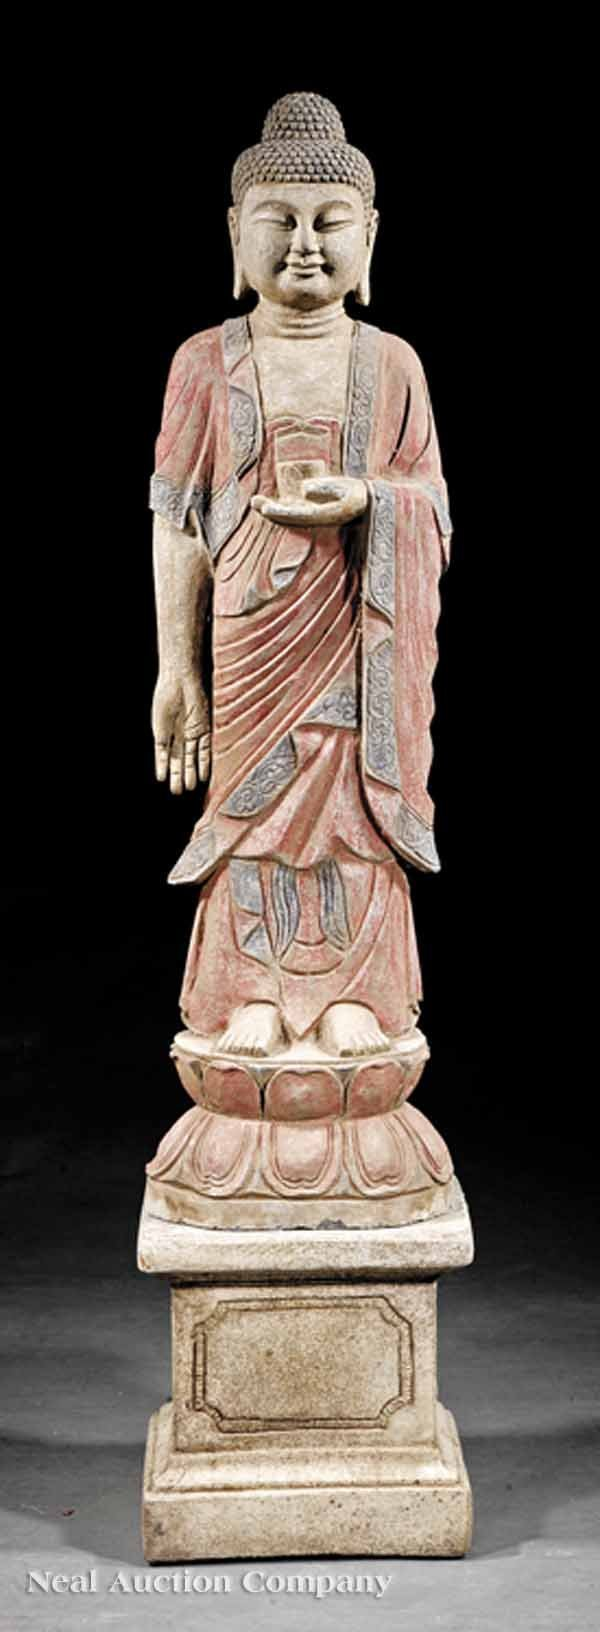 0014: Carved Stone, Polychrome Painted Figure of Buddha